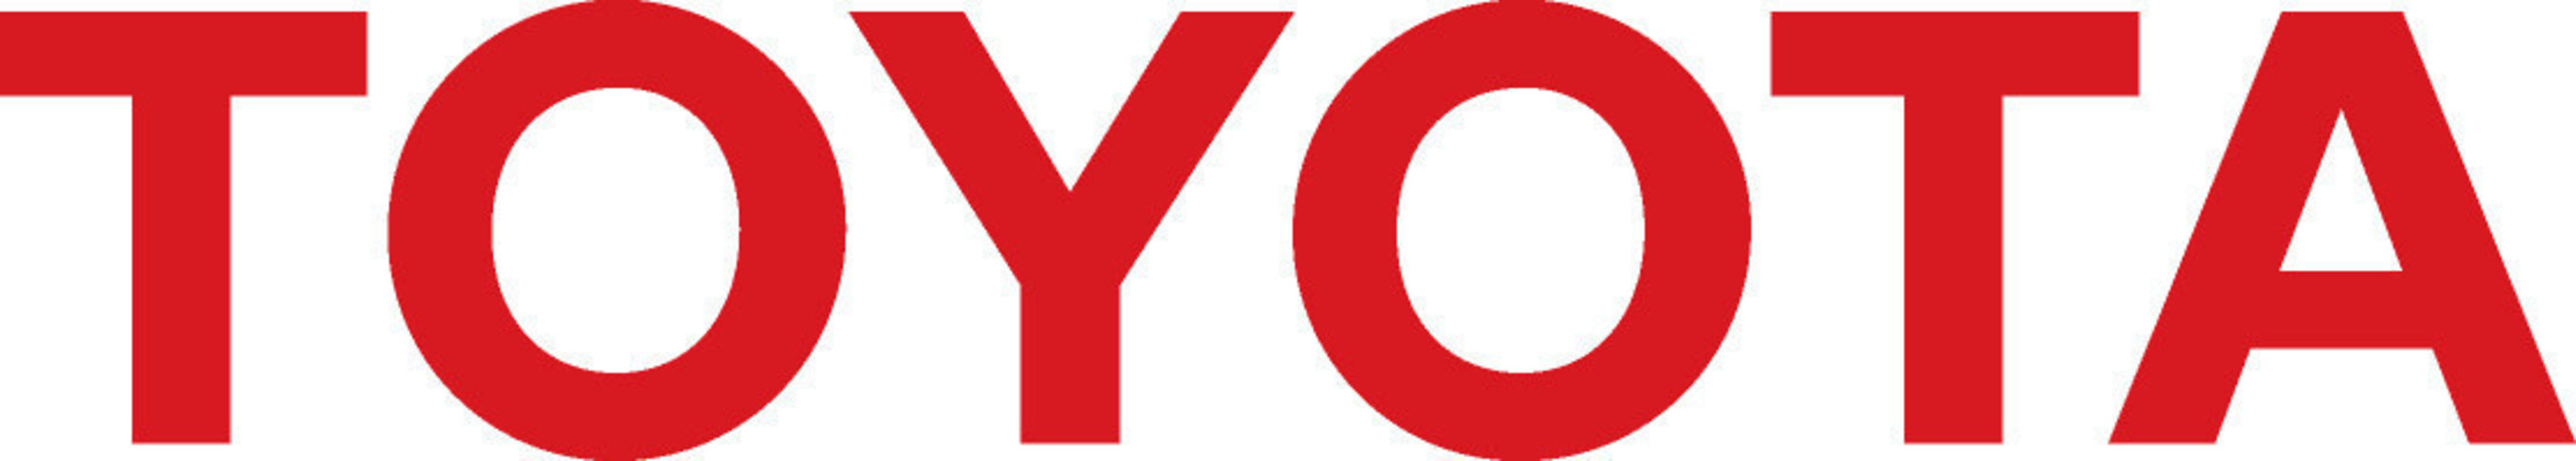 Toyota_Corp_Red_Logo